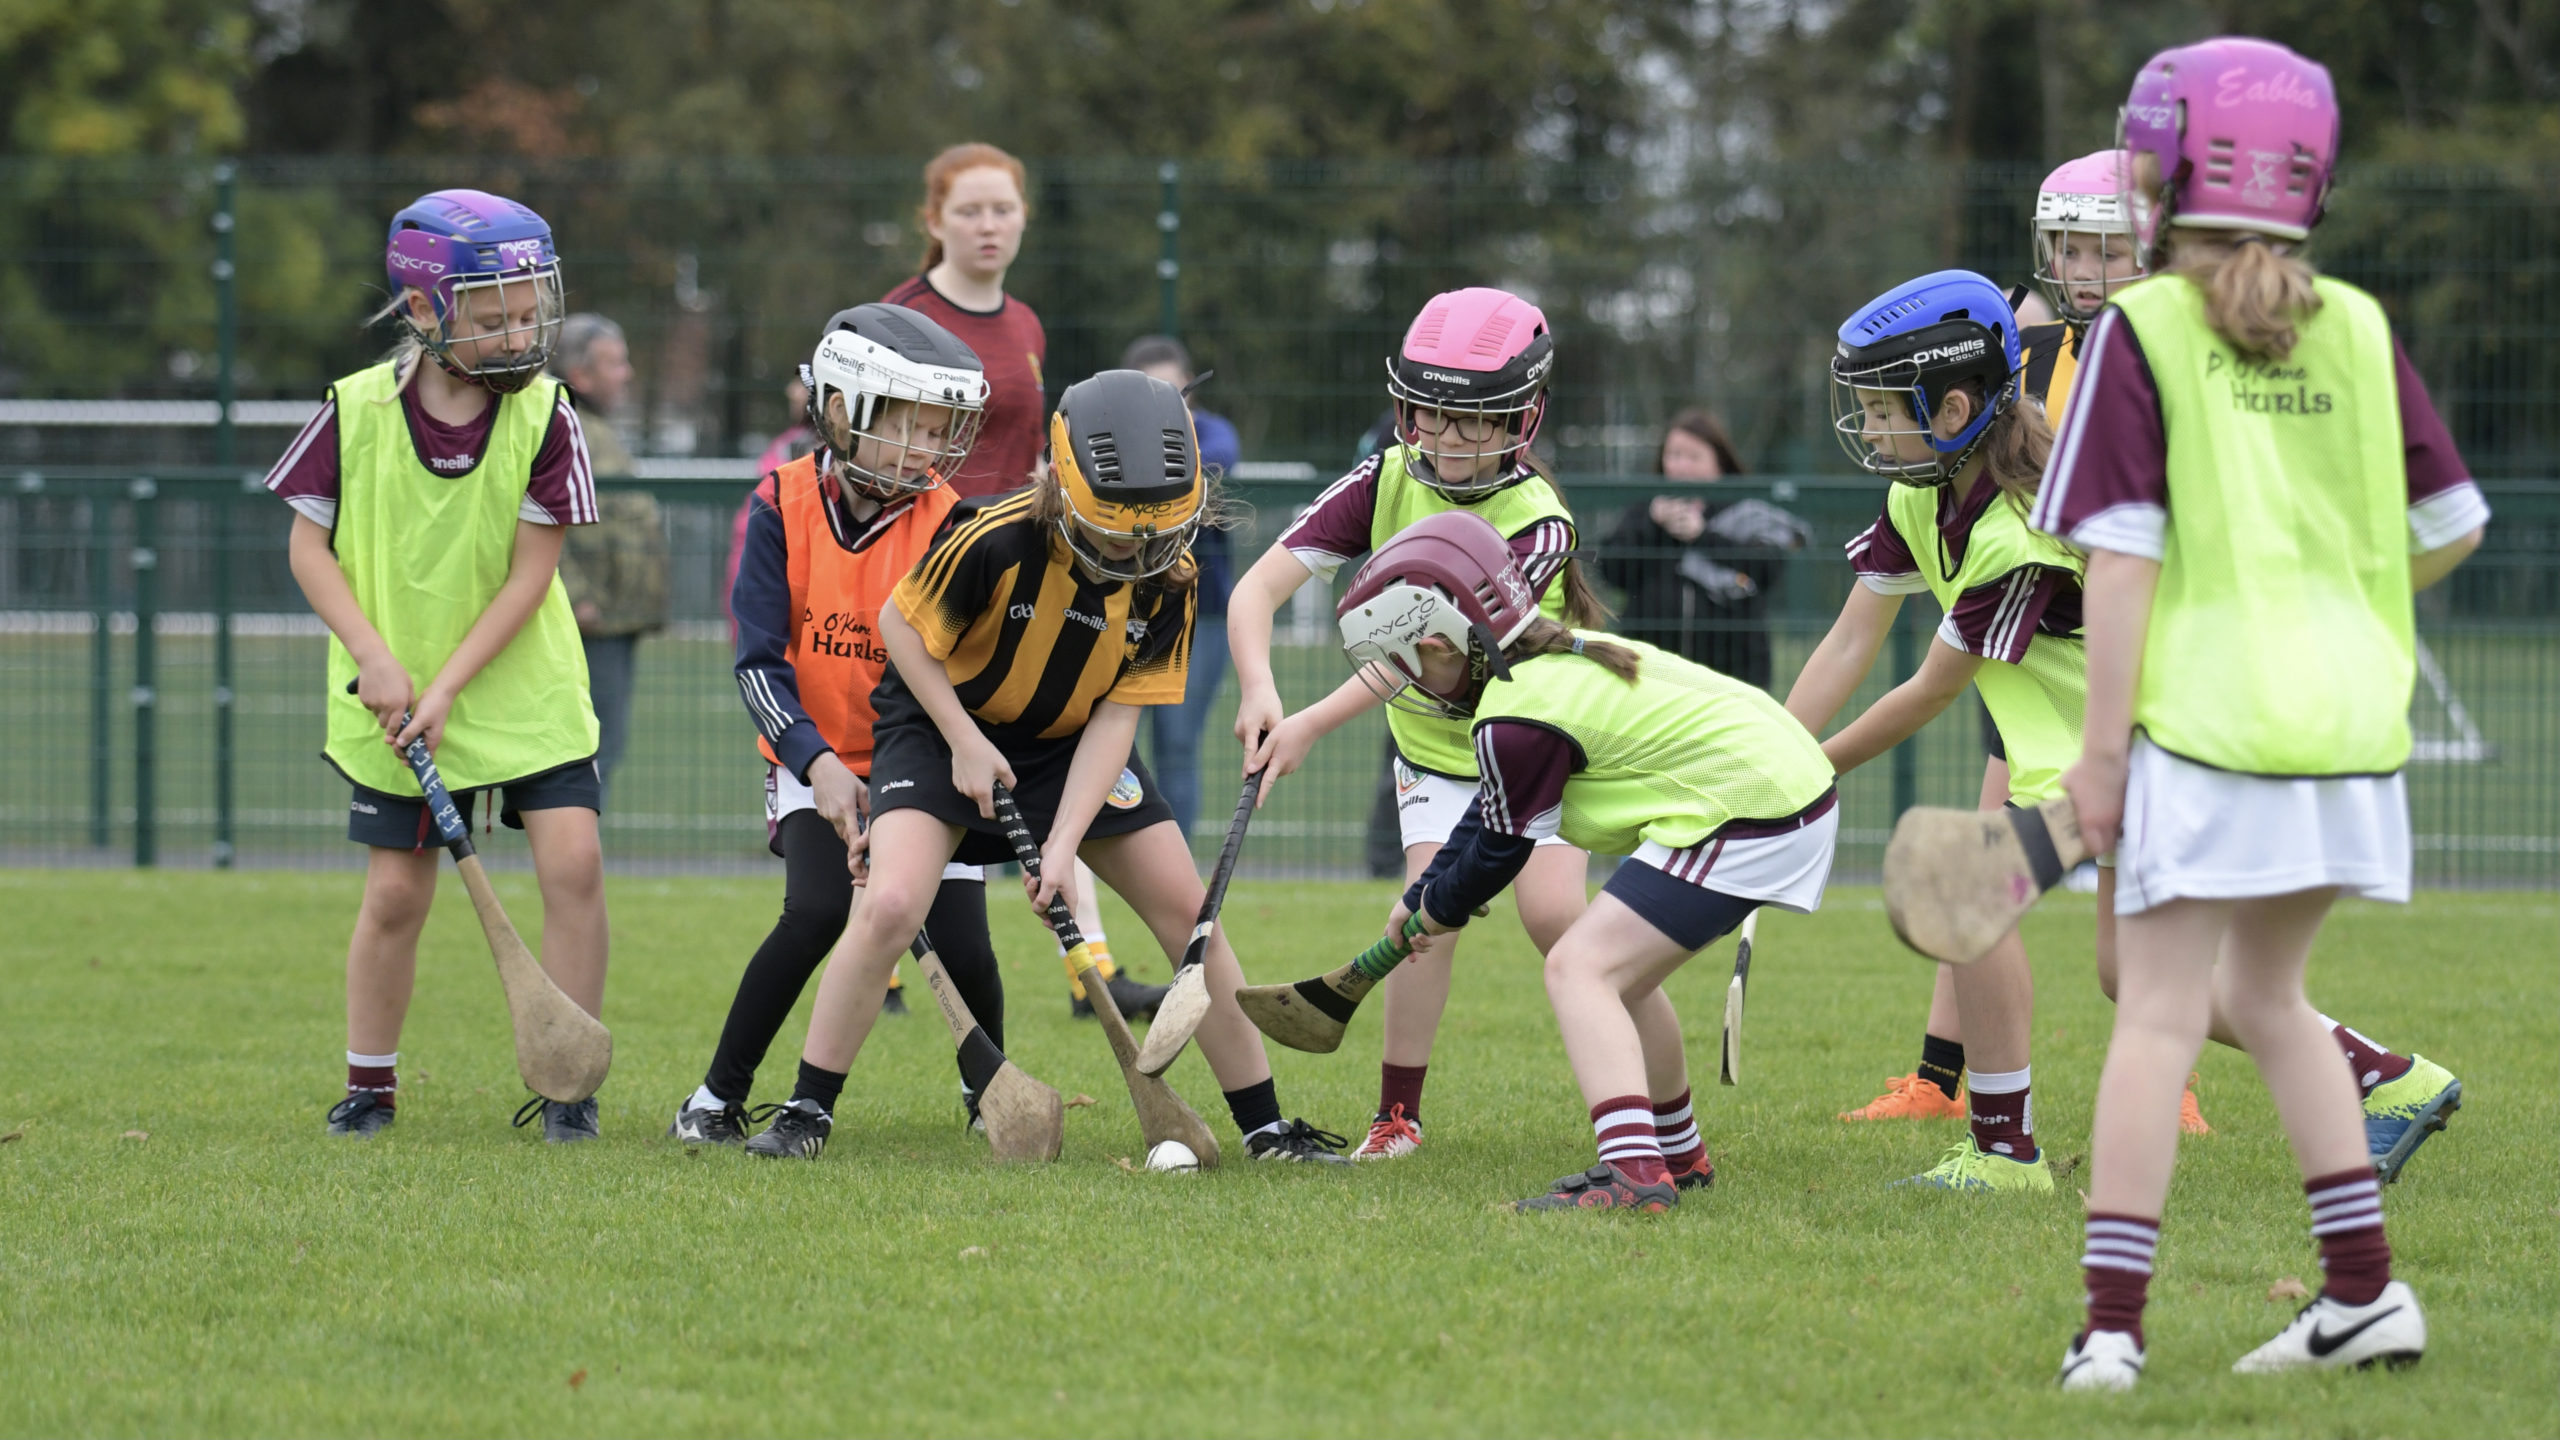 The last underage camogie blitz takes us up to halloween